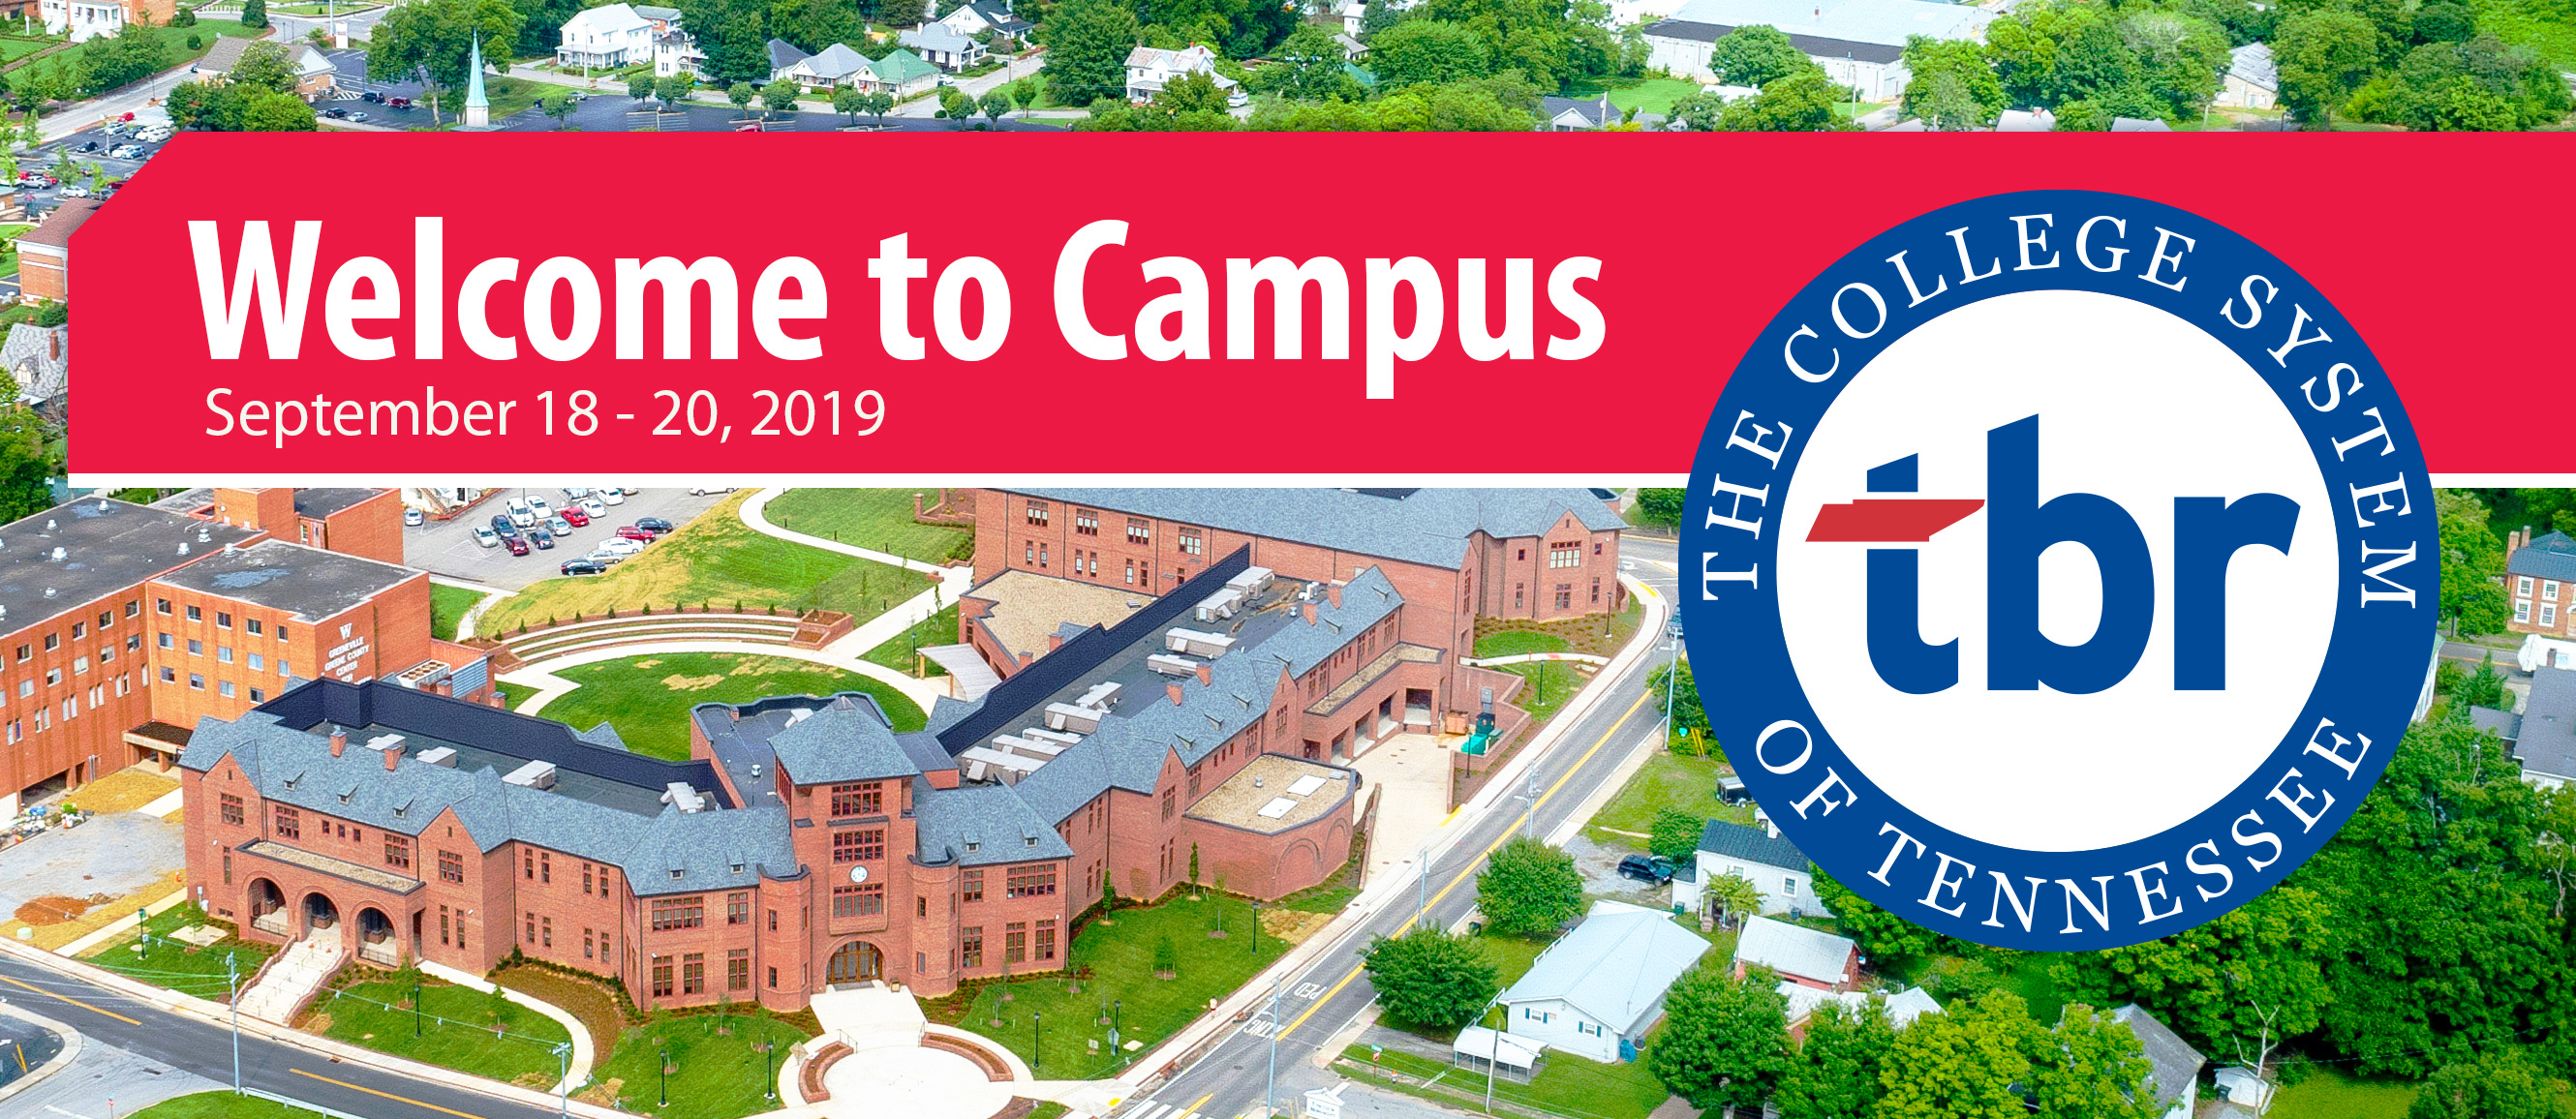 Welcome to Campus. September 18-20, 2019. TBR The College System of Tennessee.